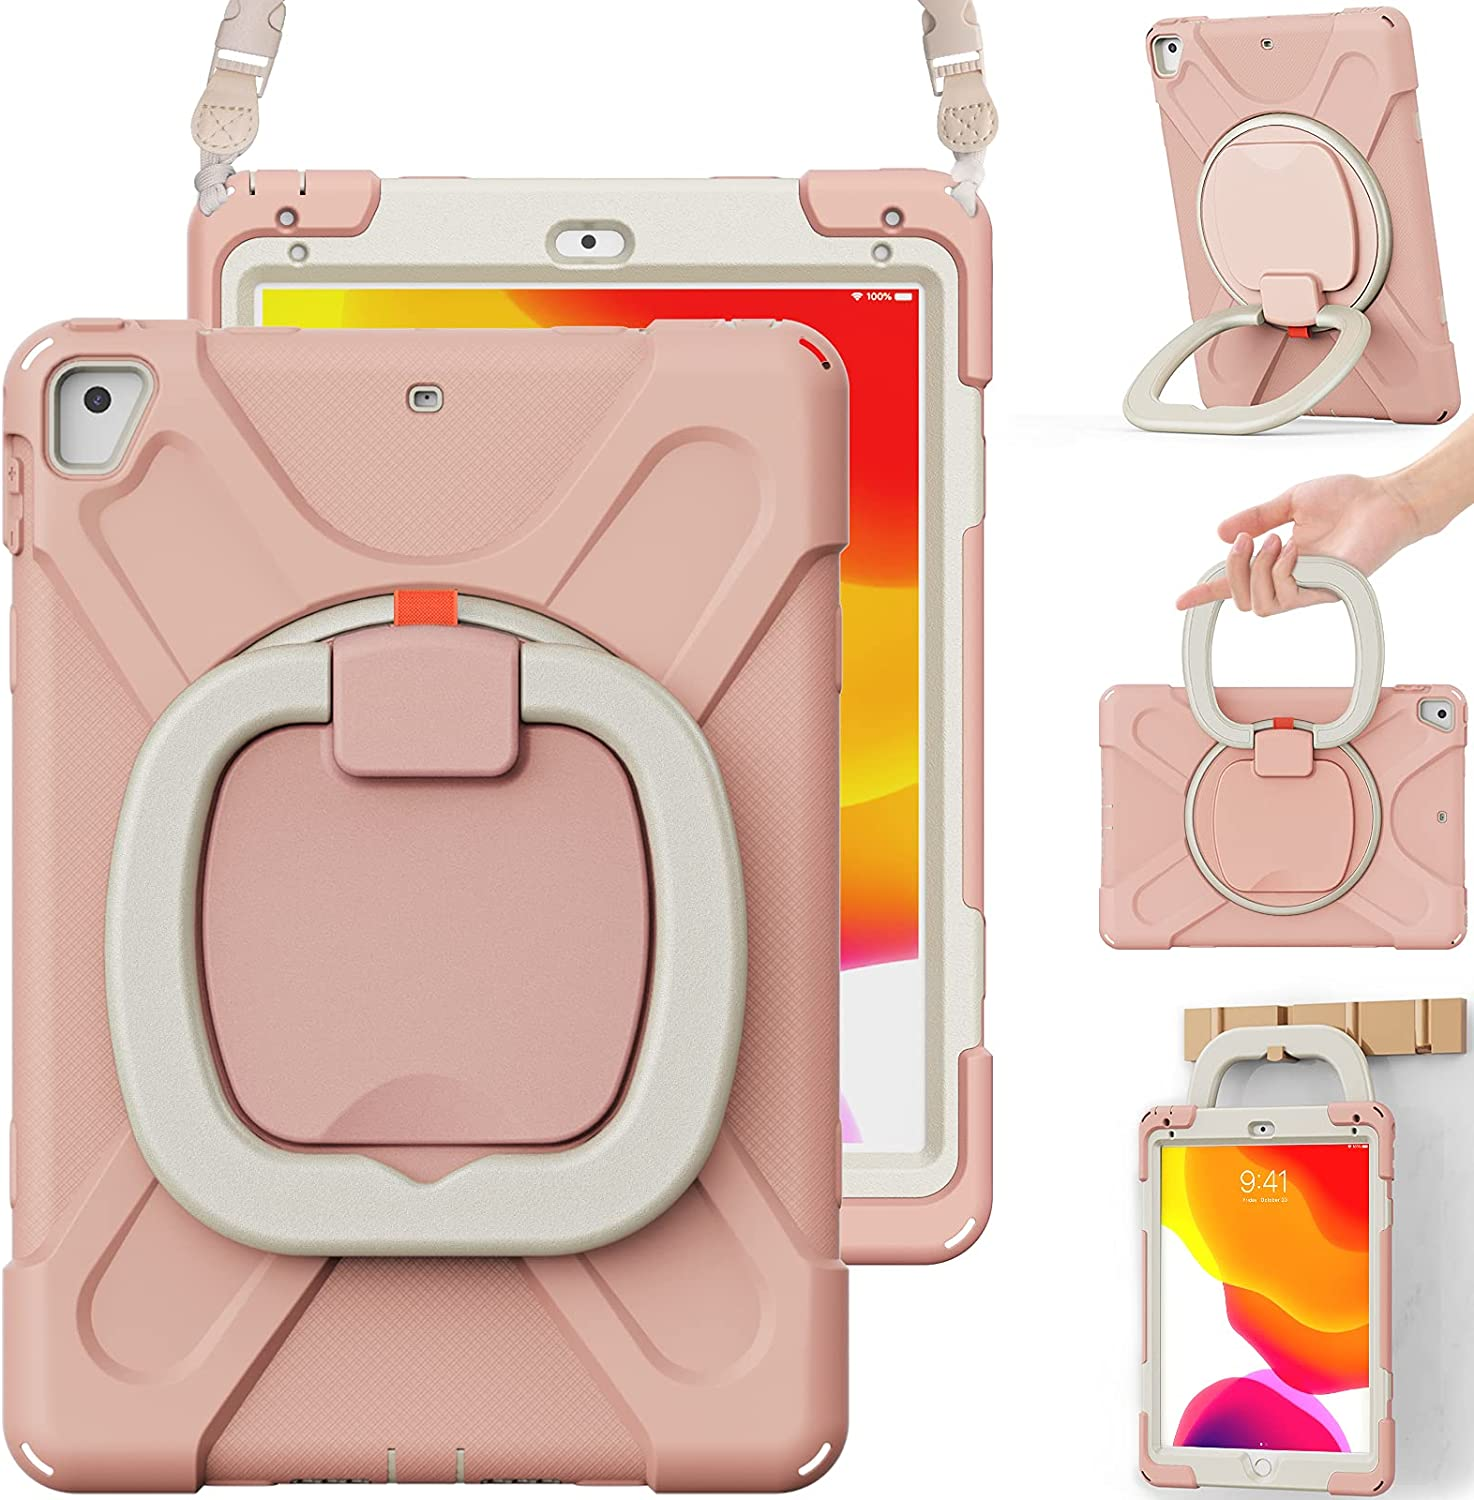 BRAECN Functional Kids Case, iPad 6th Generation Case 2018/iPad 5th Generation Case 2017, Rugged Silicone Cover with Hand Grip, Pencil Holder, Shoulder Strap, Stable Kickstand for iPad 9.7''-Rose Gold